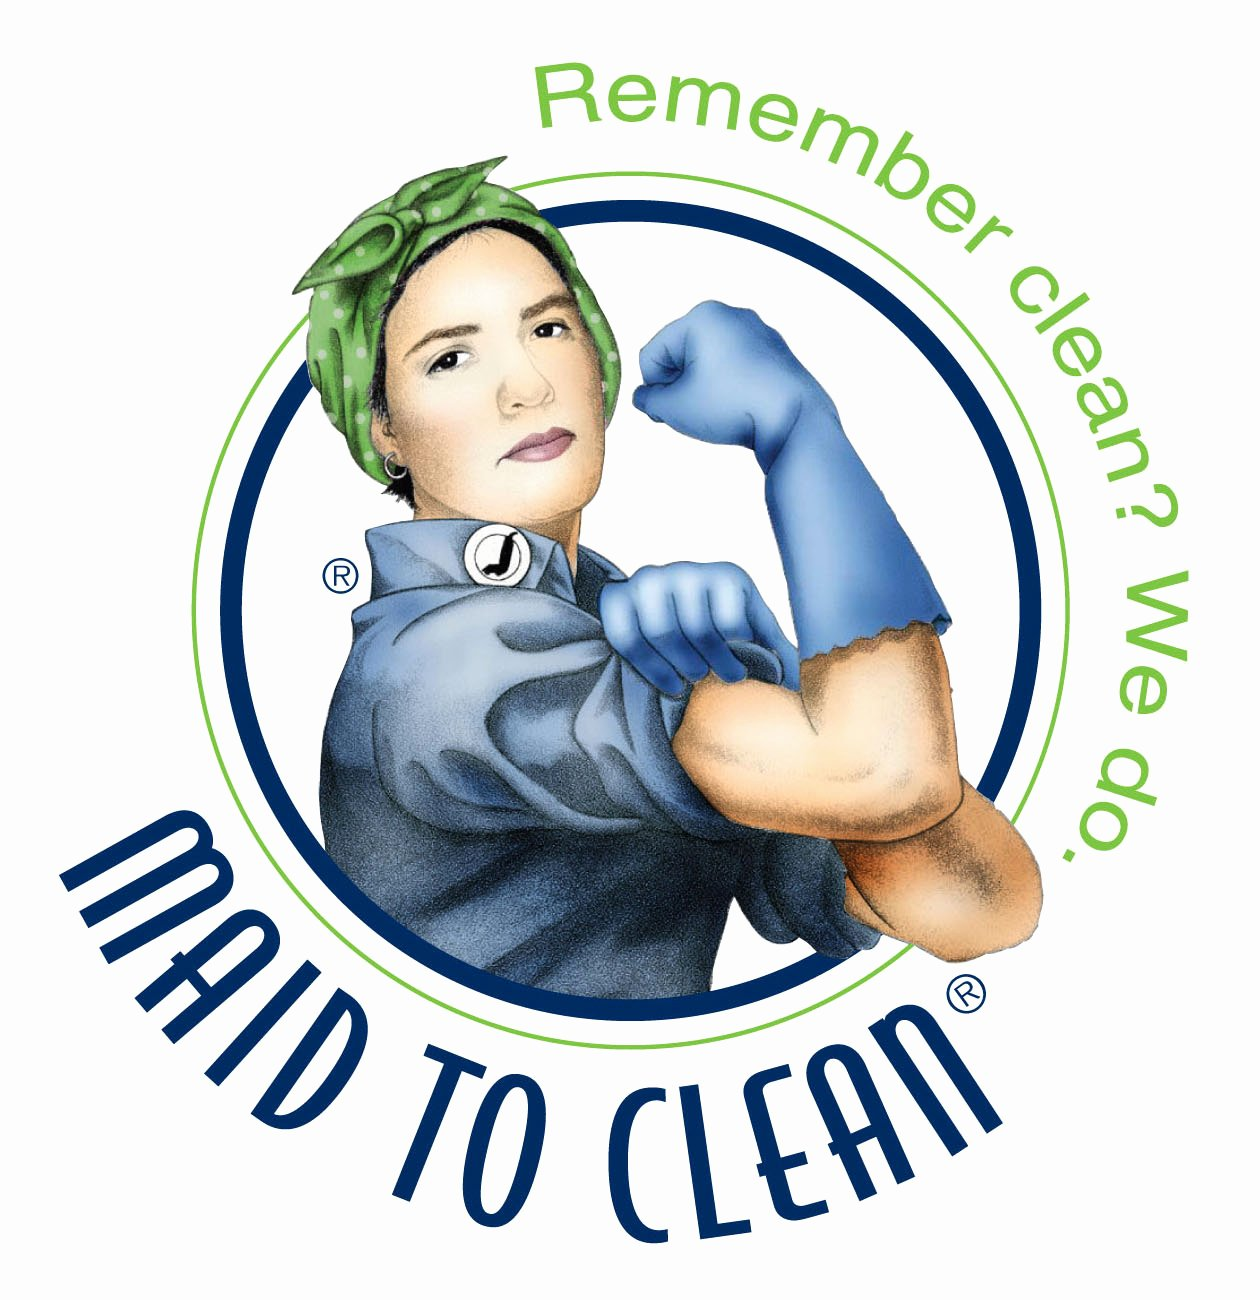 House Cleaning Logo Images Lovely Free Cleaning Graphics Download Free Clip Art Free Clip Art On Clipart Library